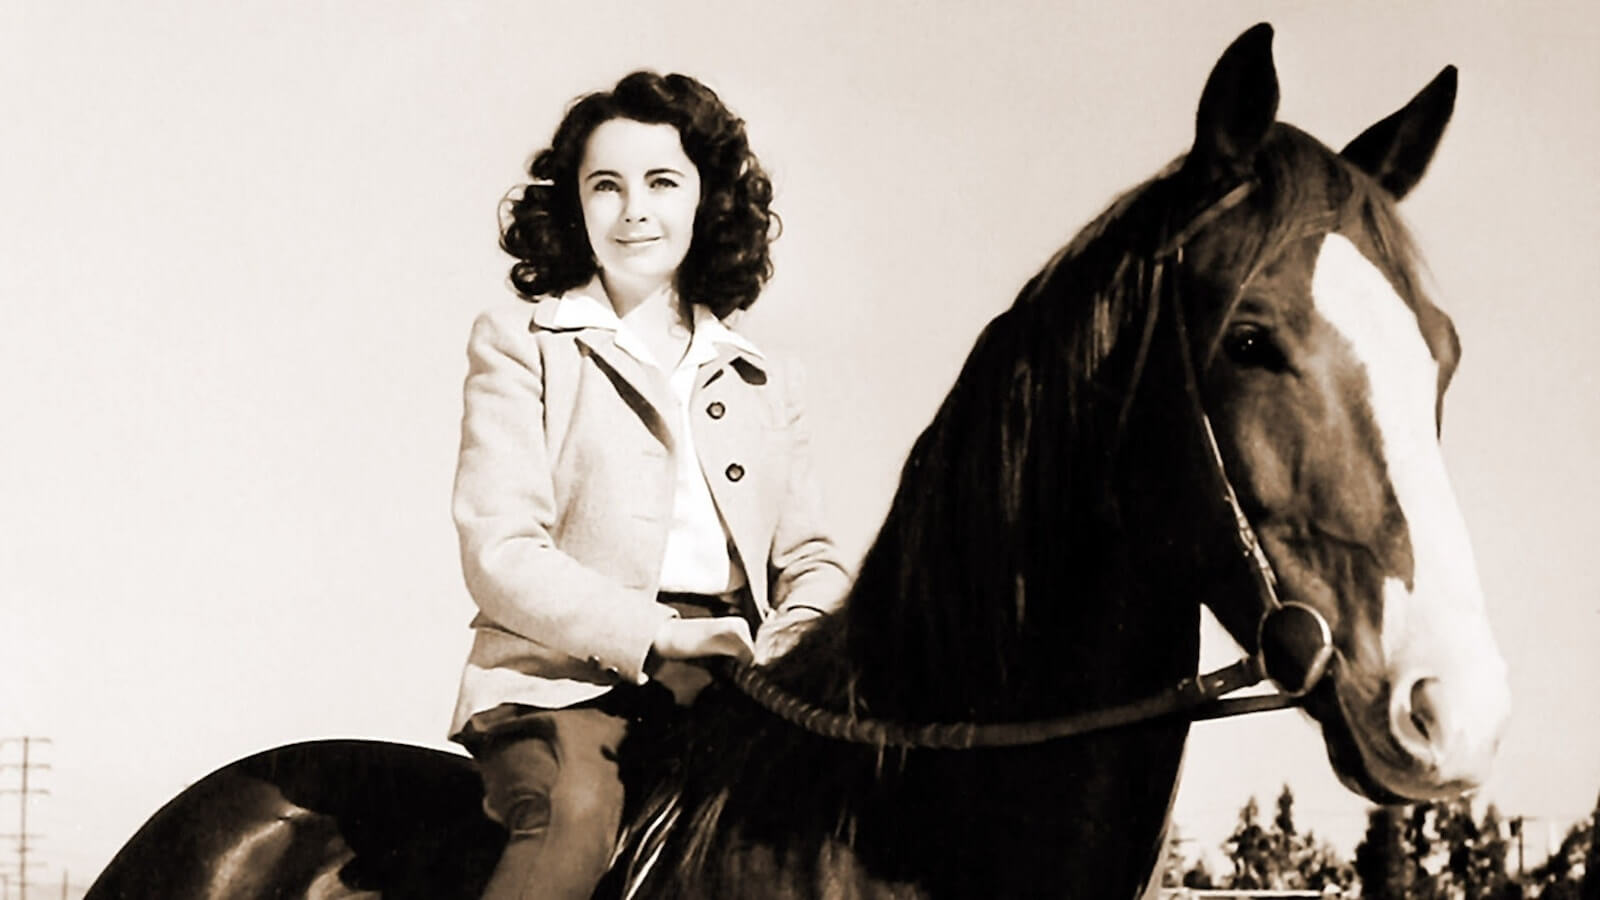 Child Actors - Child Stars - Child Actors Then and Now - Elizabeth Taylor - National Velvet - StudioBinder